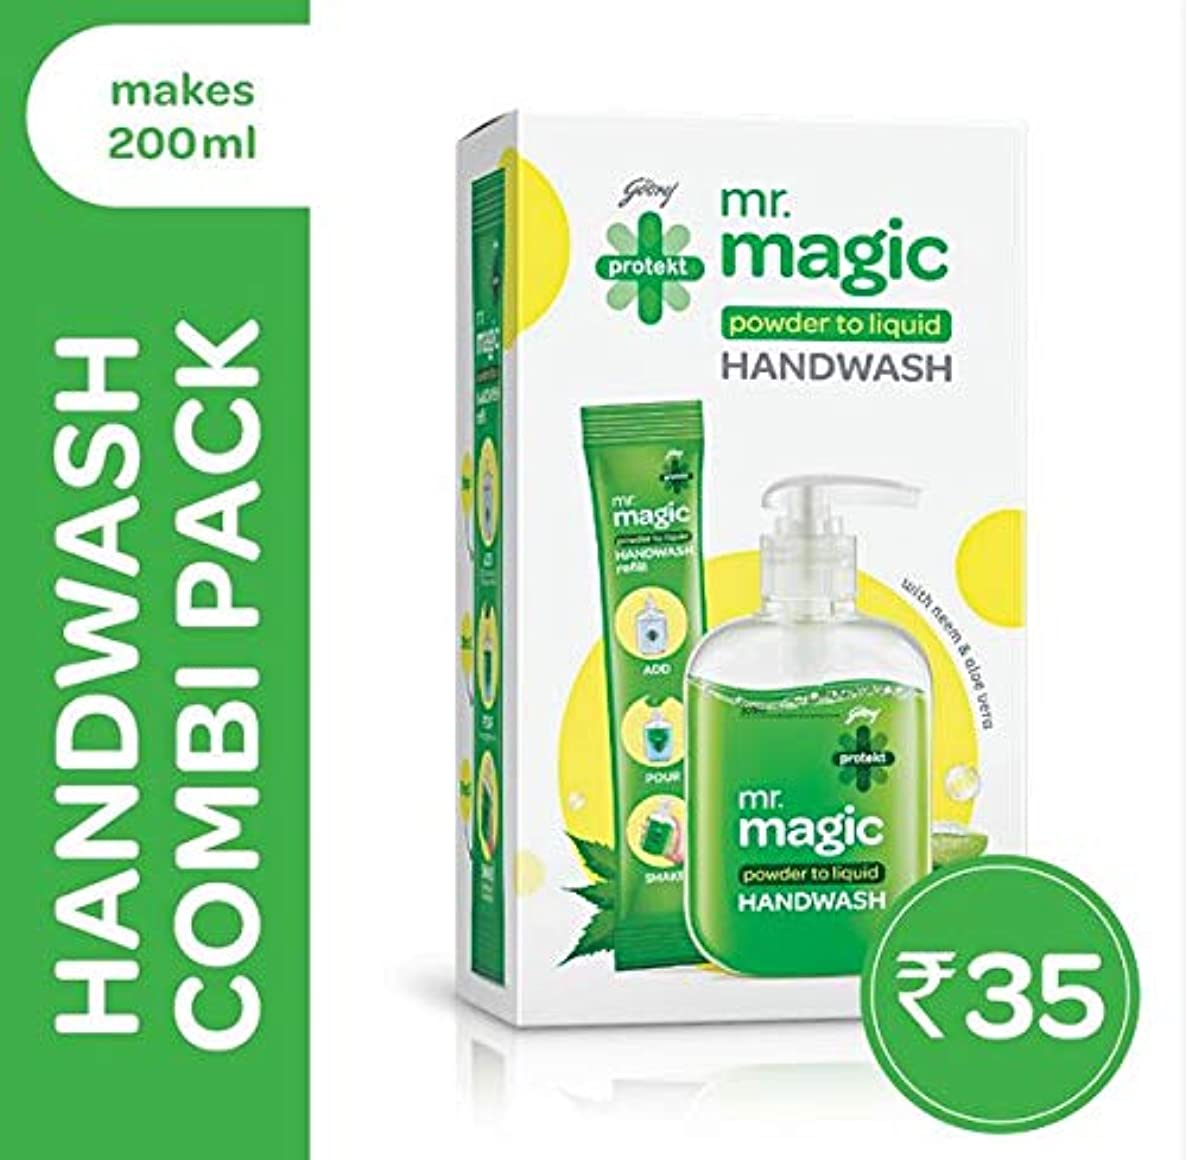 魔術インストラクターひばりGodrej Protekt Mr. Magic Handwash 9g (Pack of 2)